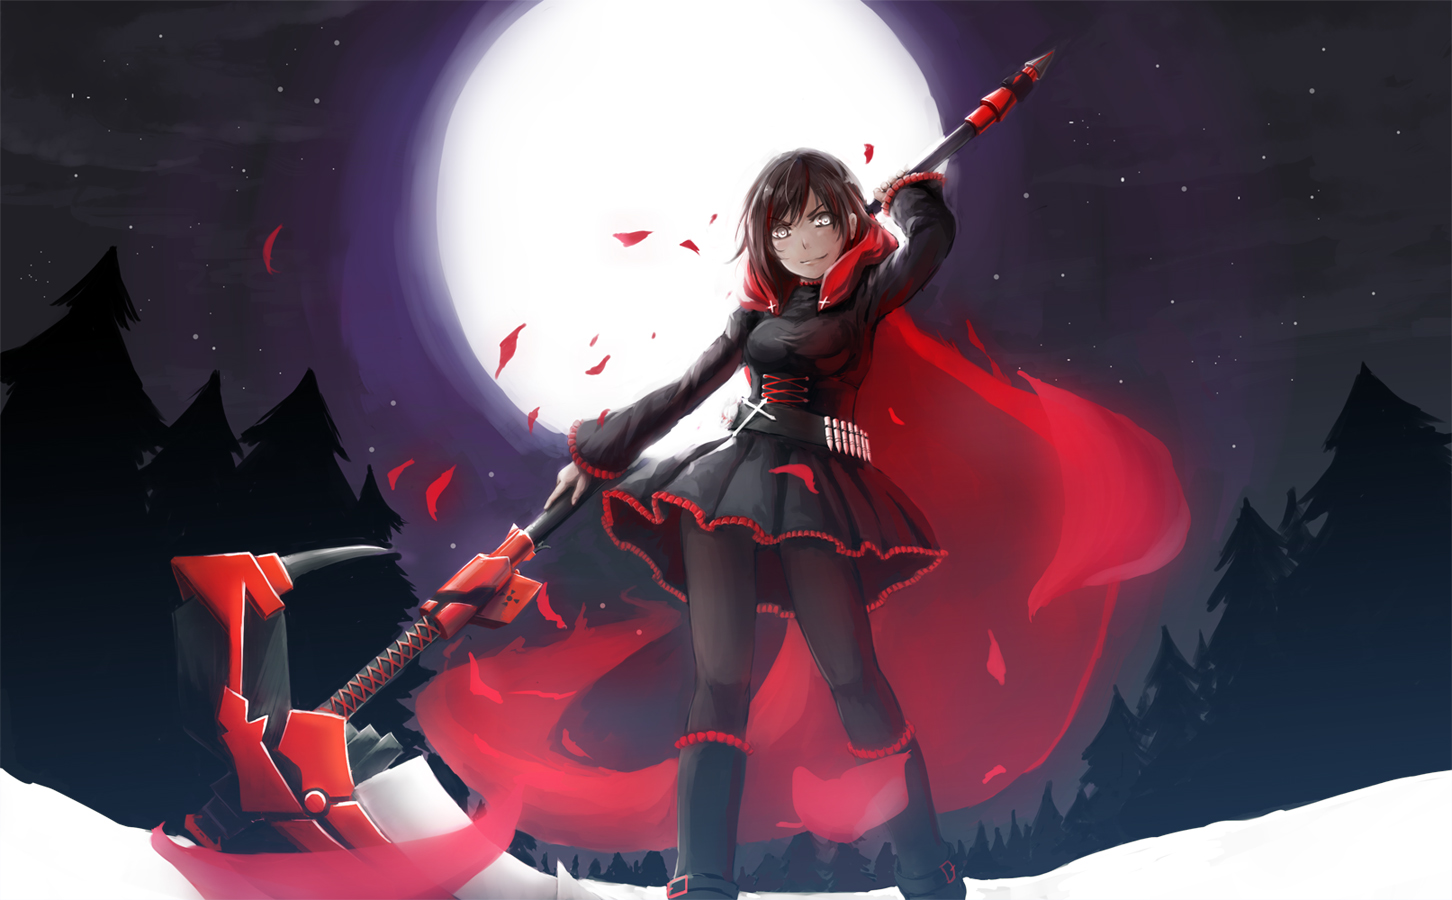 9 Title Ruby Rose Anime Rwby Ruby Rose Wallpaper - Anime Red